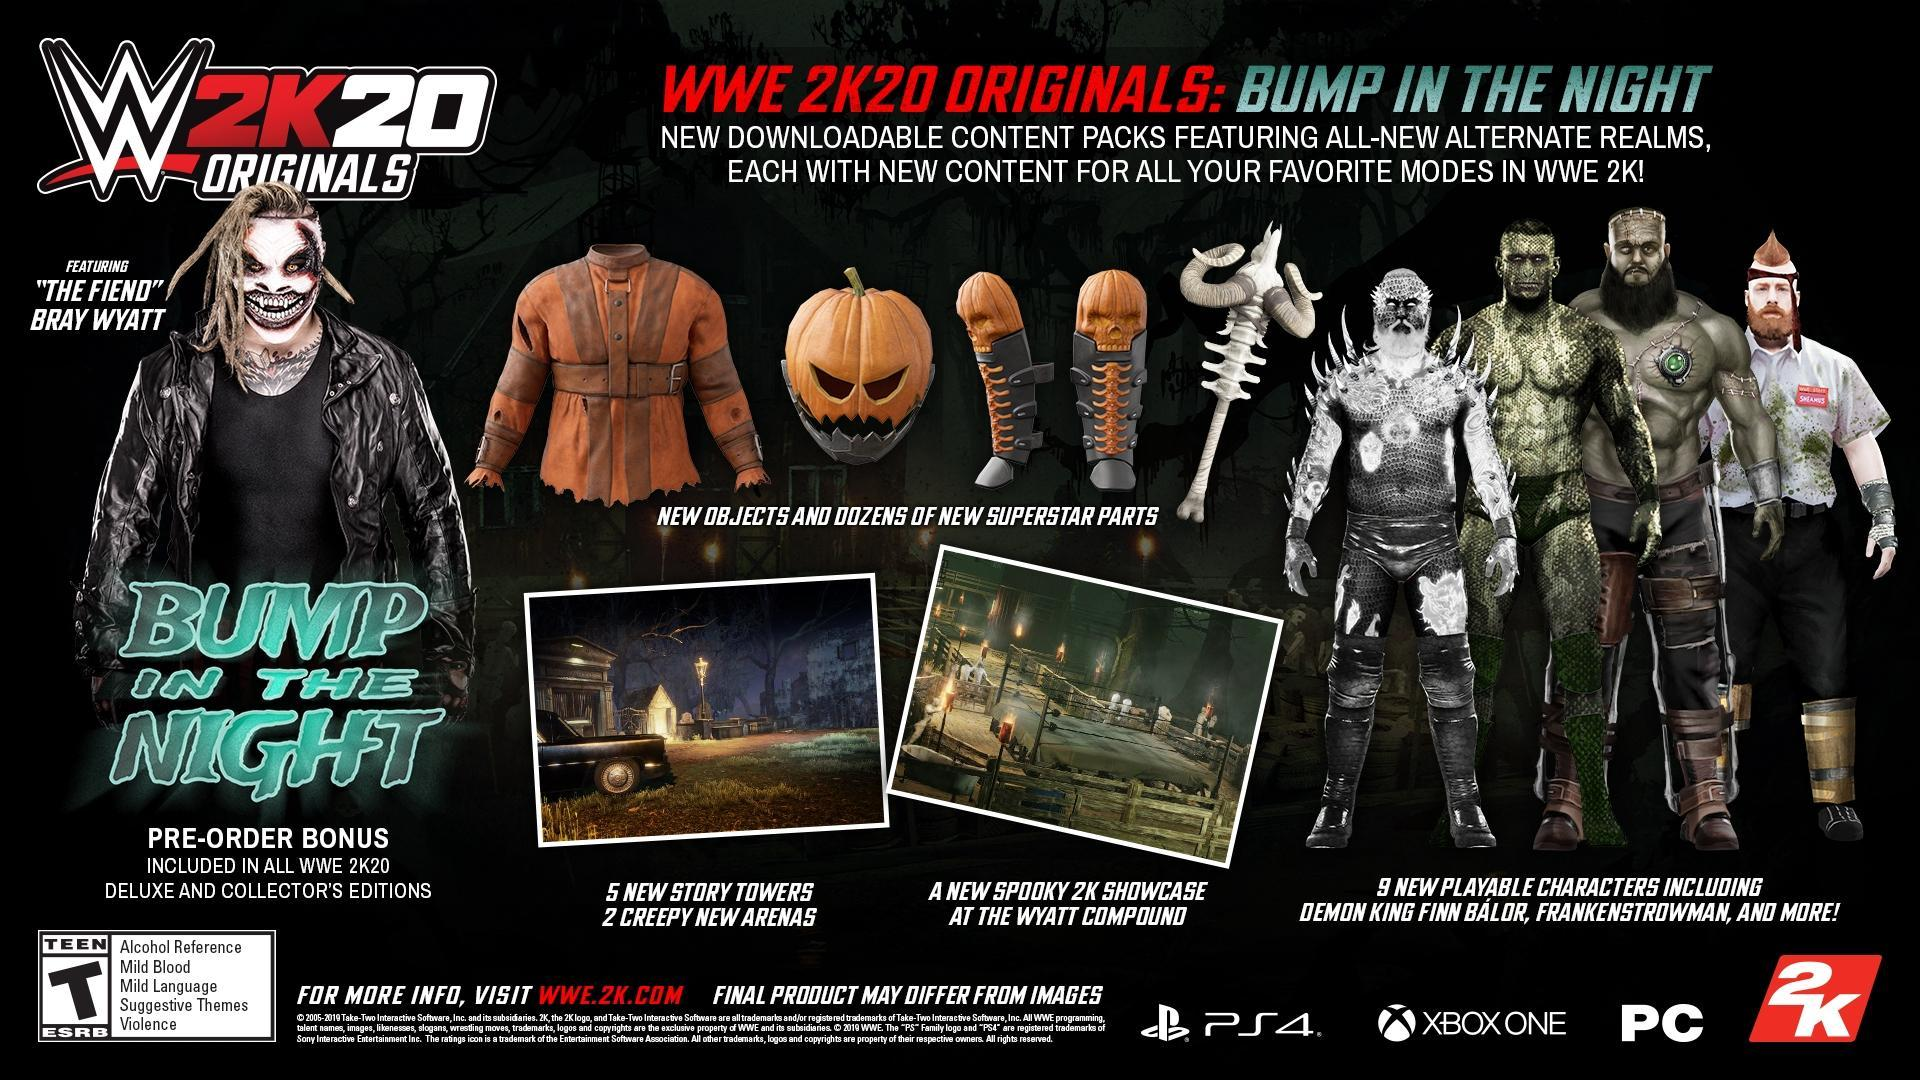 wwe 2k20 originals bump in the night infographic